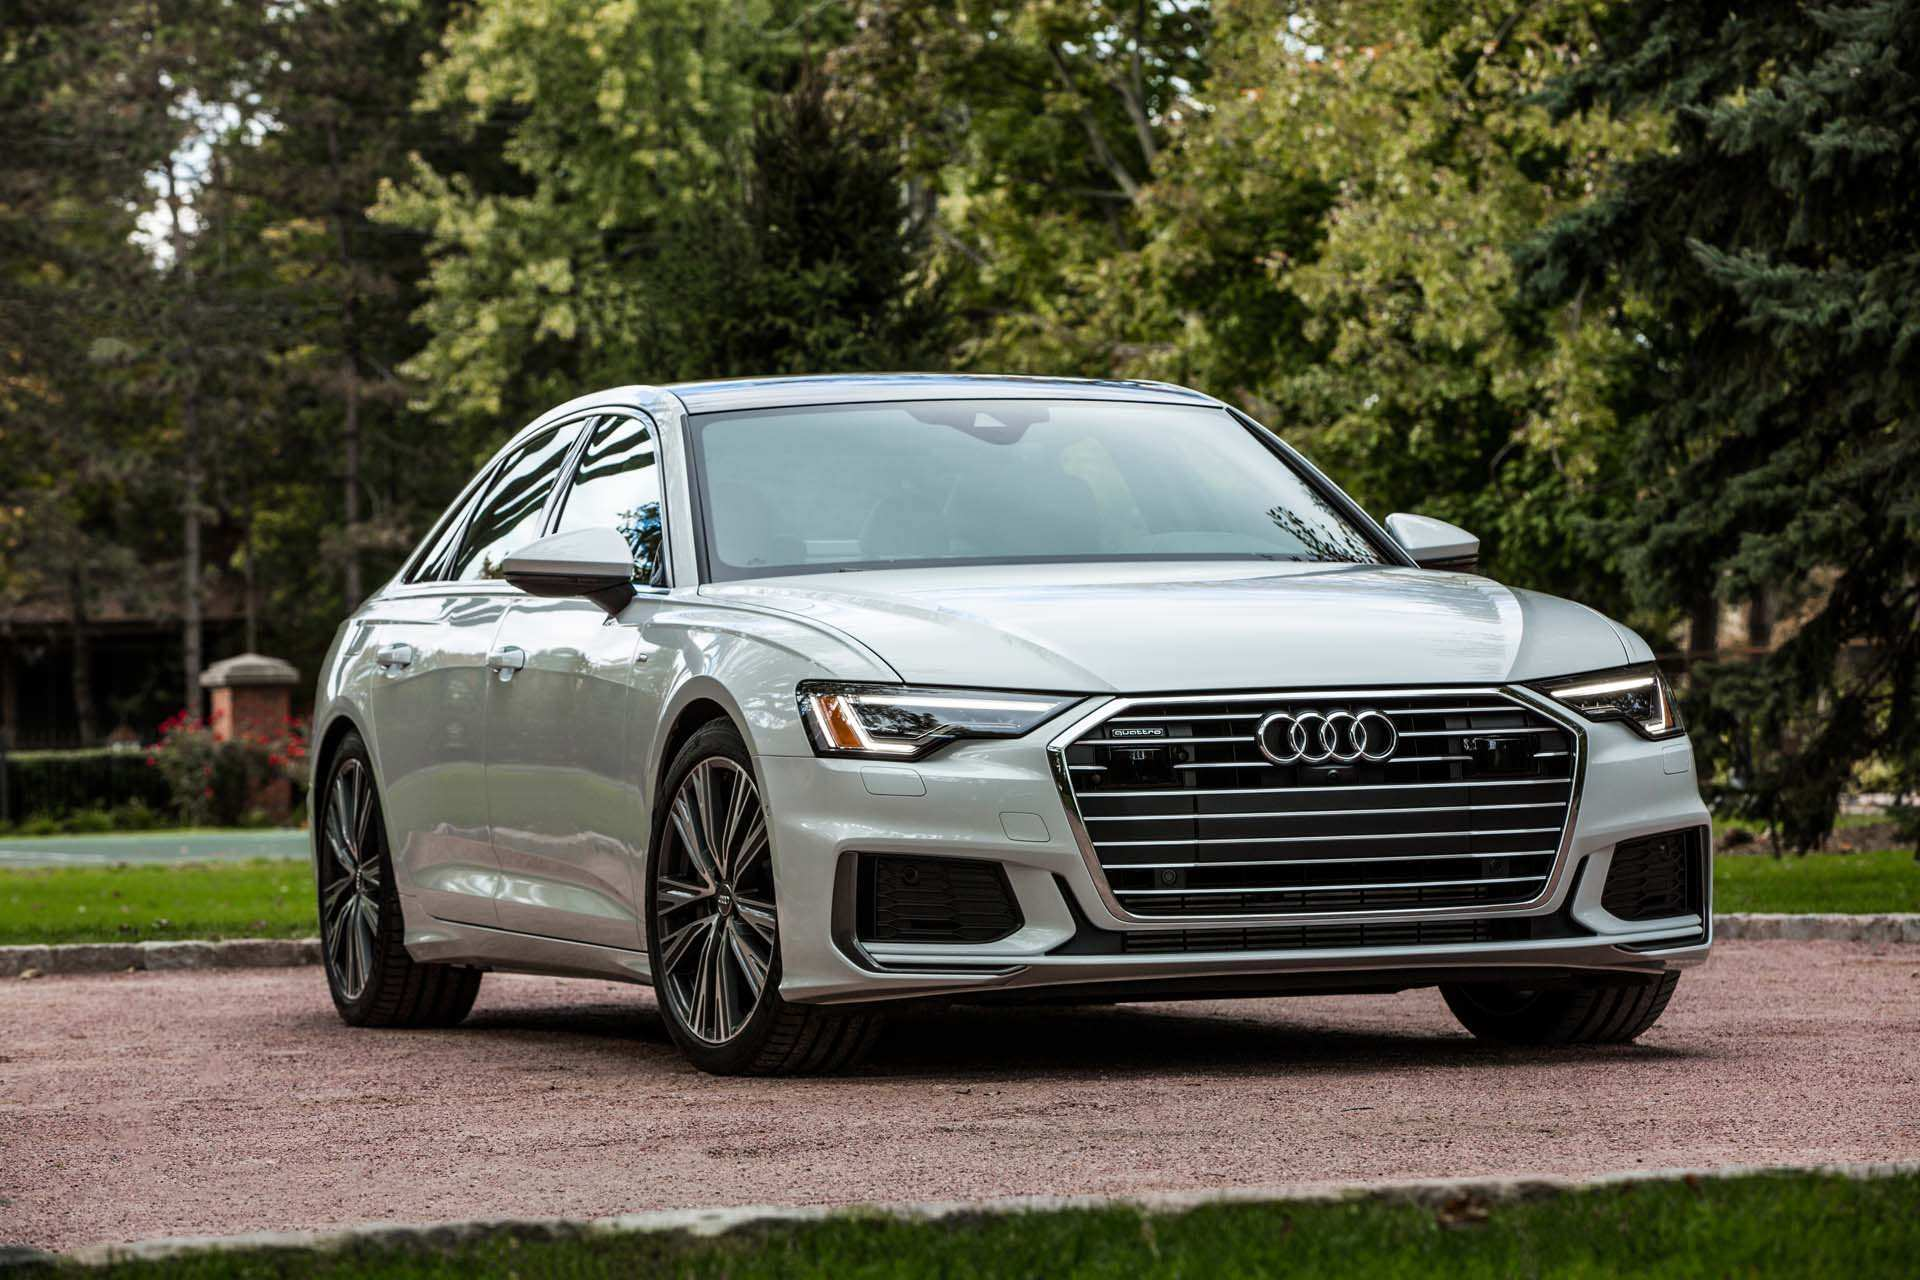 43 A 2019 The Audi A6 Photos